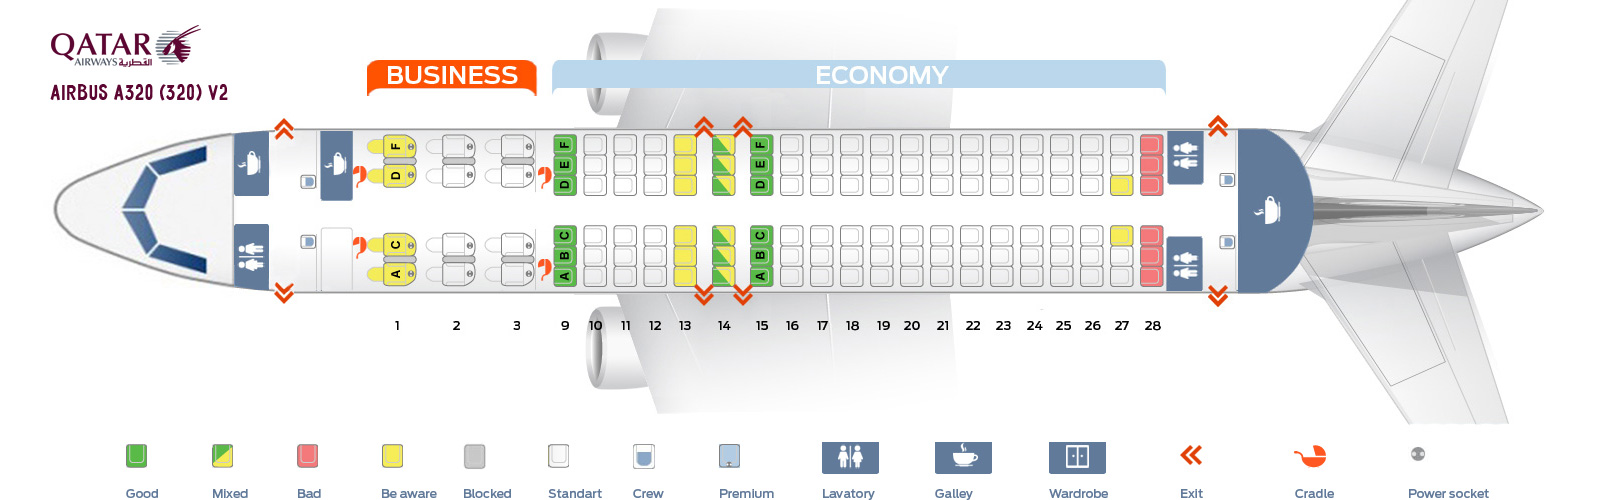 Seat Map And Seating Chart Airbus A320 200 Qatar Airways V2